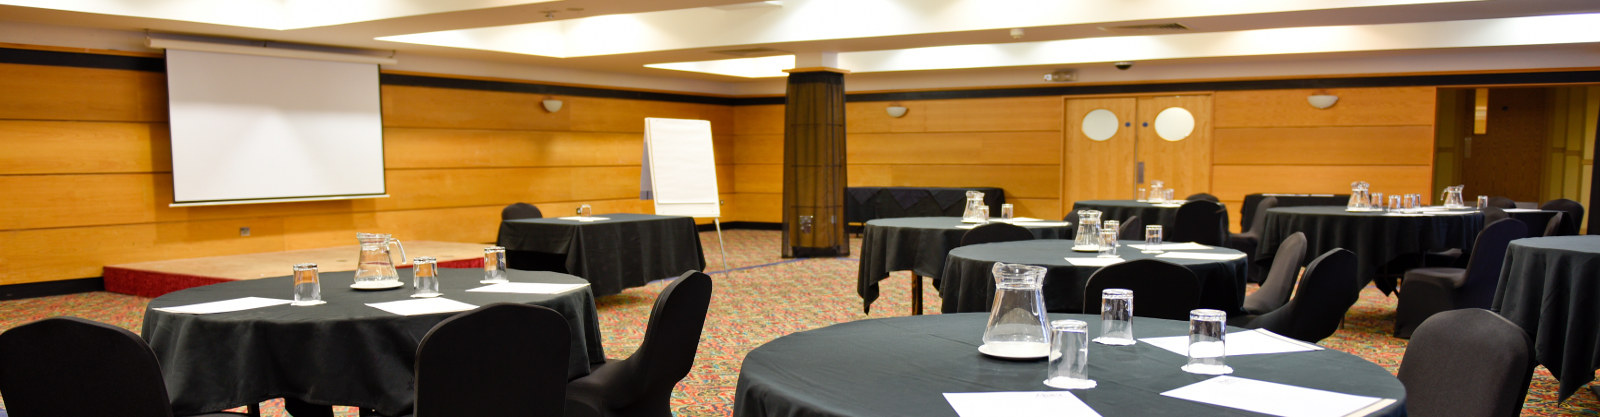 Meetings, Conferences Room Bournemouth & Events